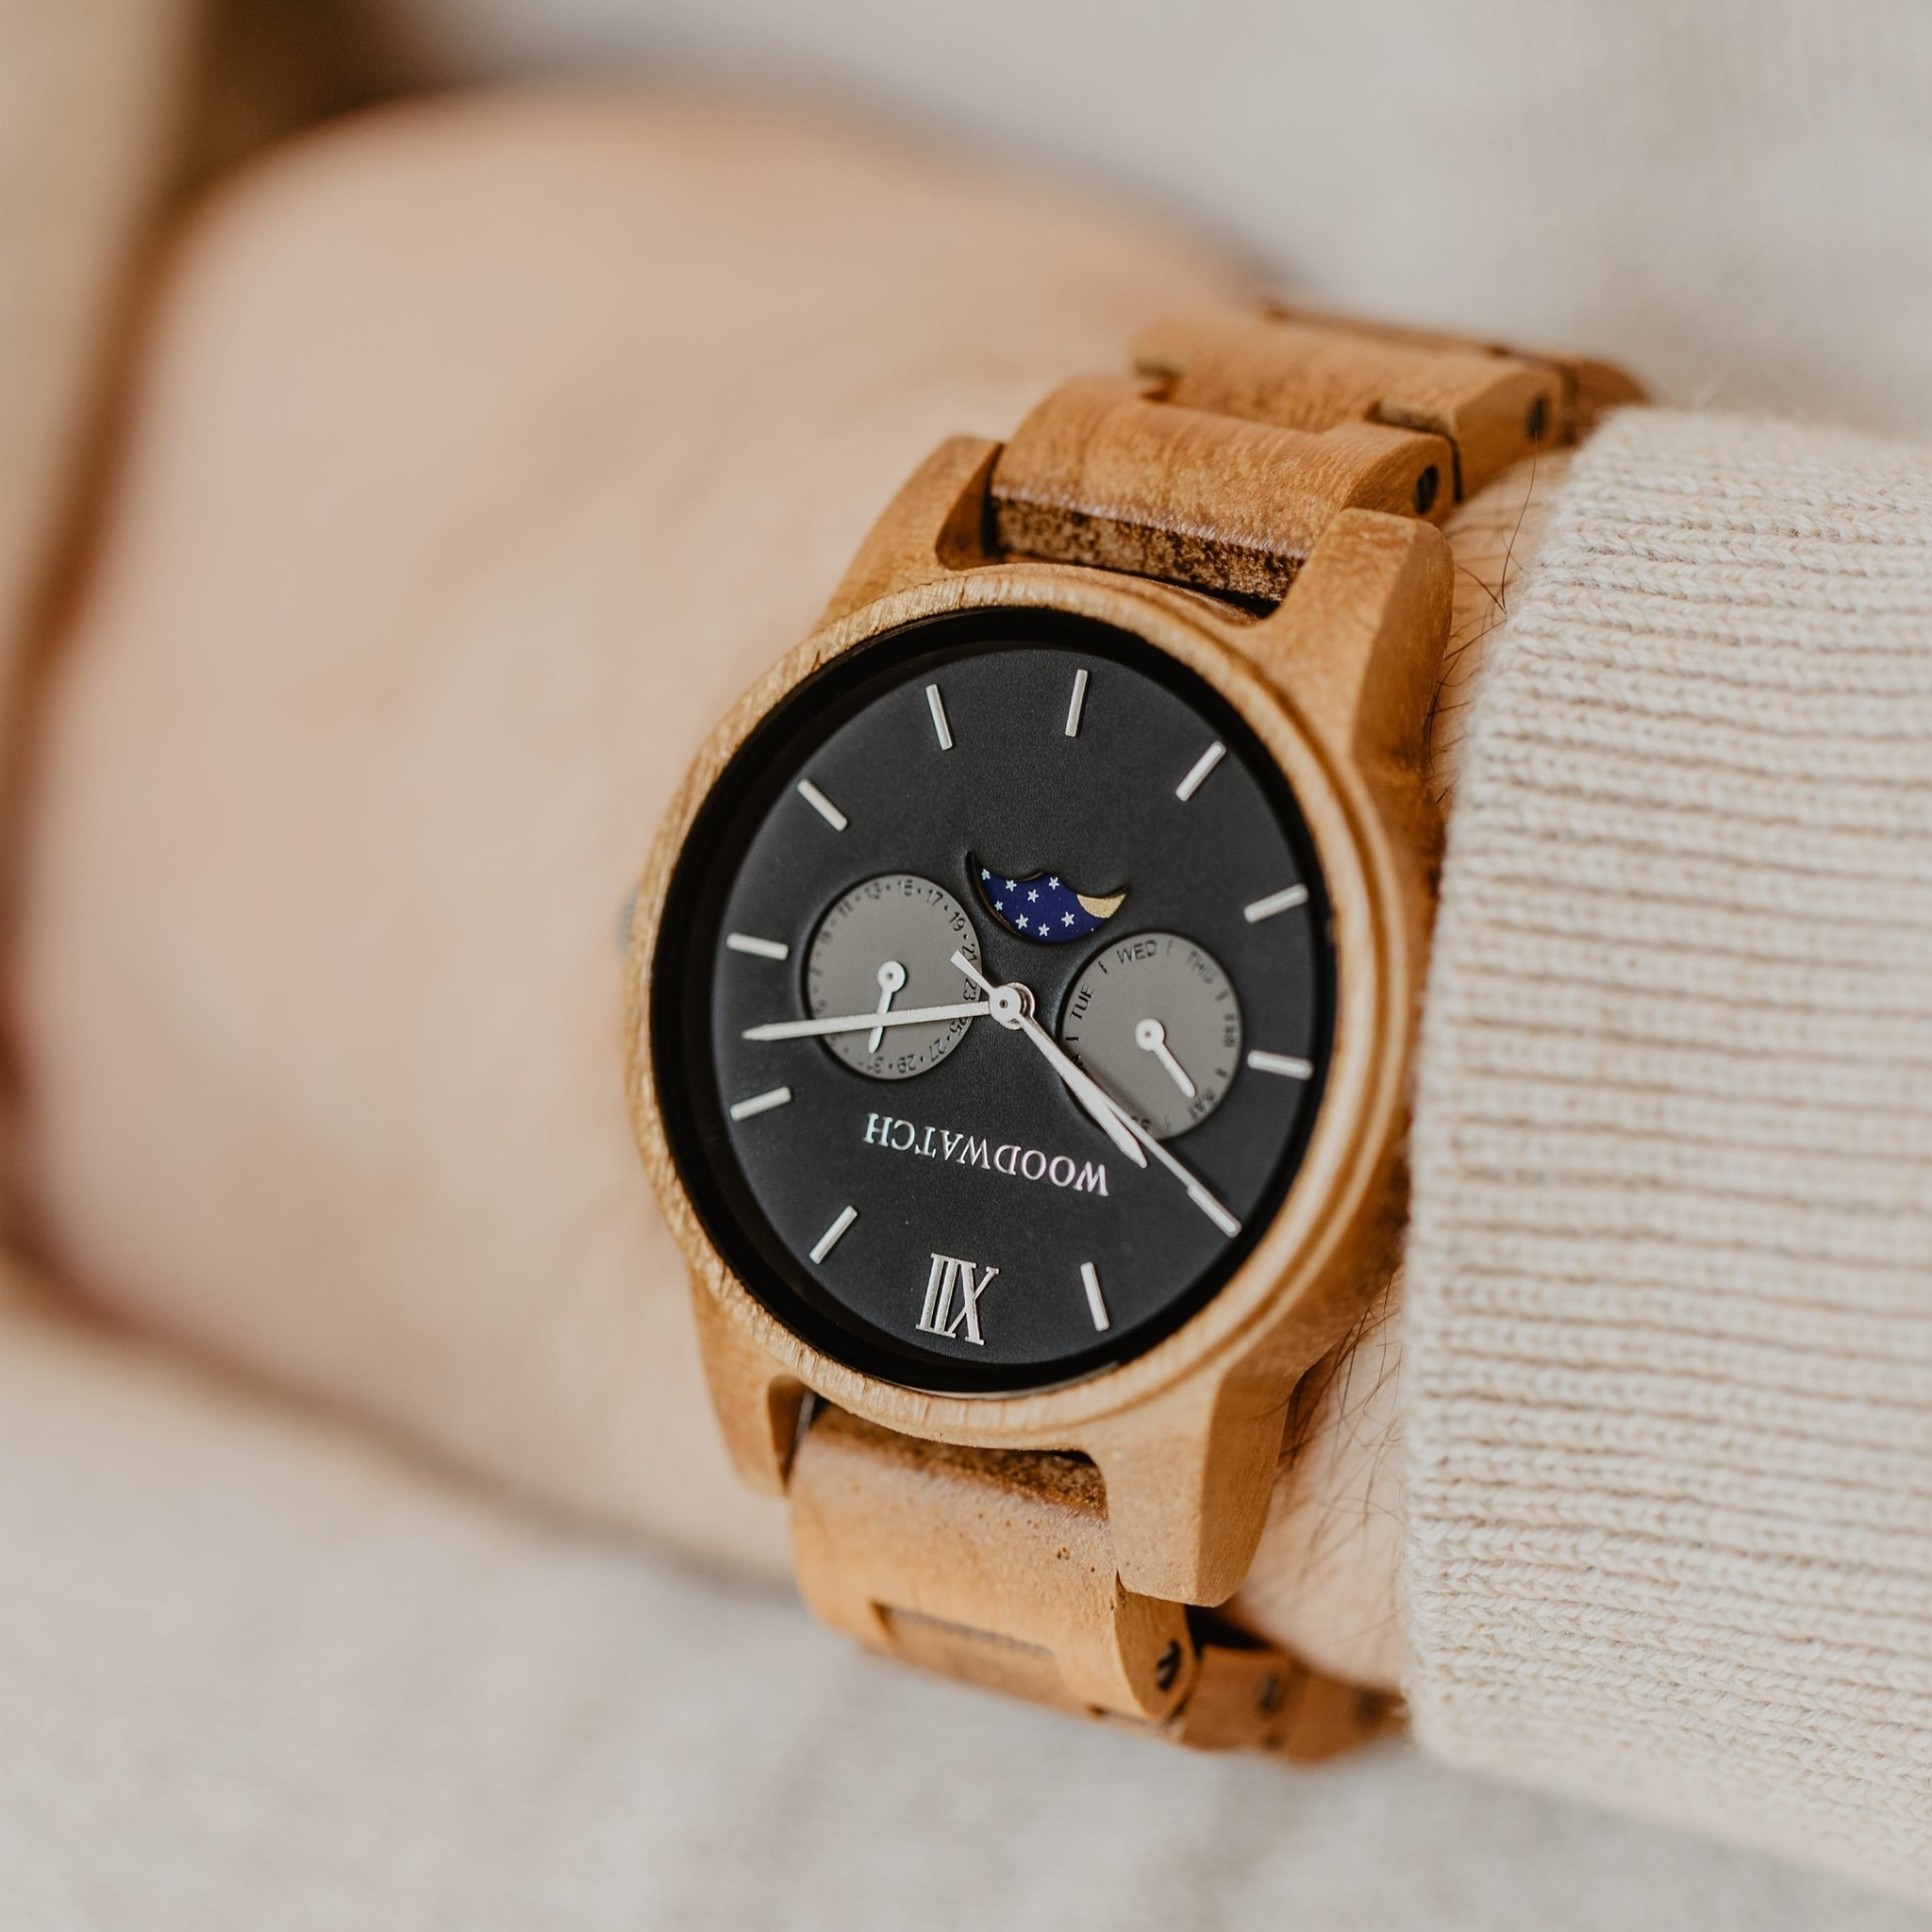 The CLASSIC Collection rethinks the aesthetic of a WoodWatch in a sophisticated way. The slim cases give a classy impression while featuring a unique a moonphase movement and two extra subdials featuring a week and month display. The CLASSIC Maverick is m